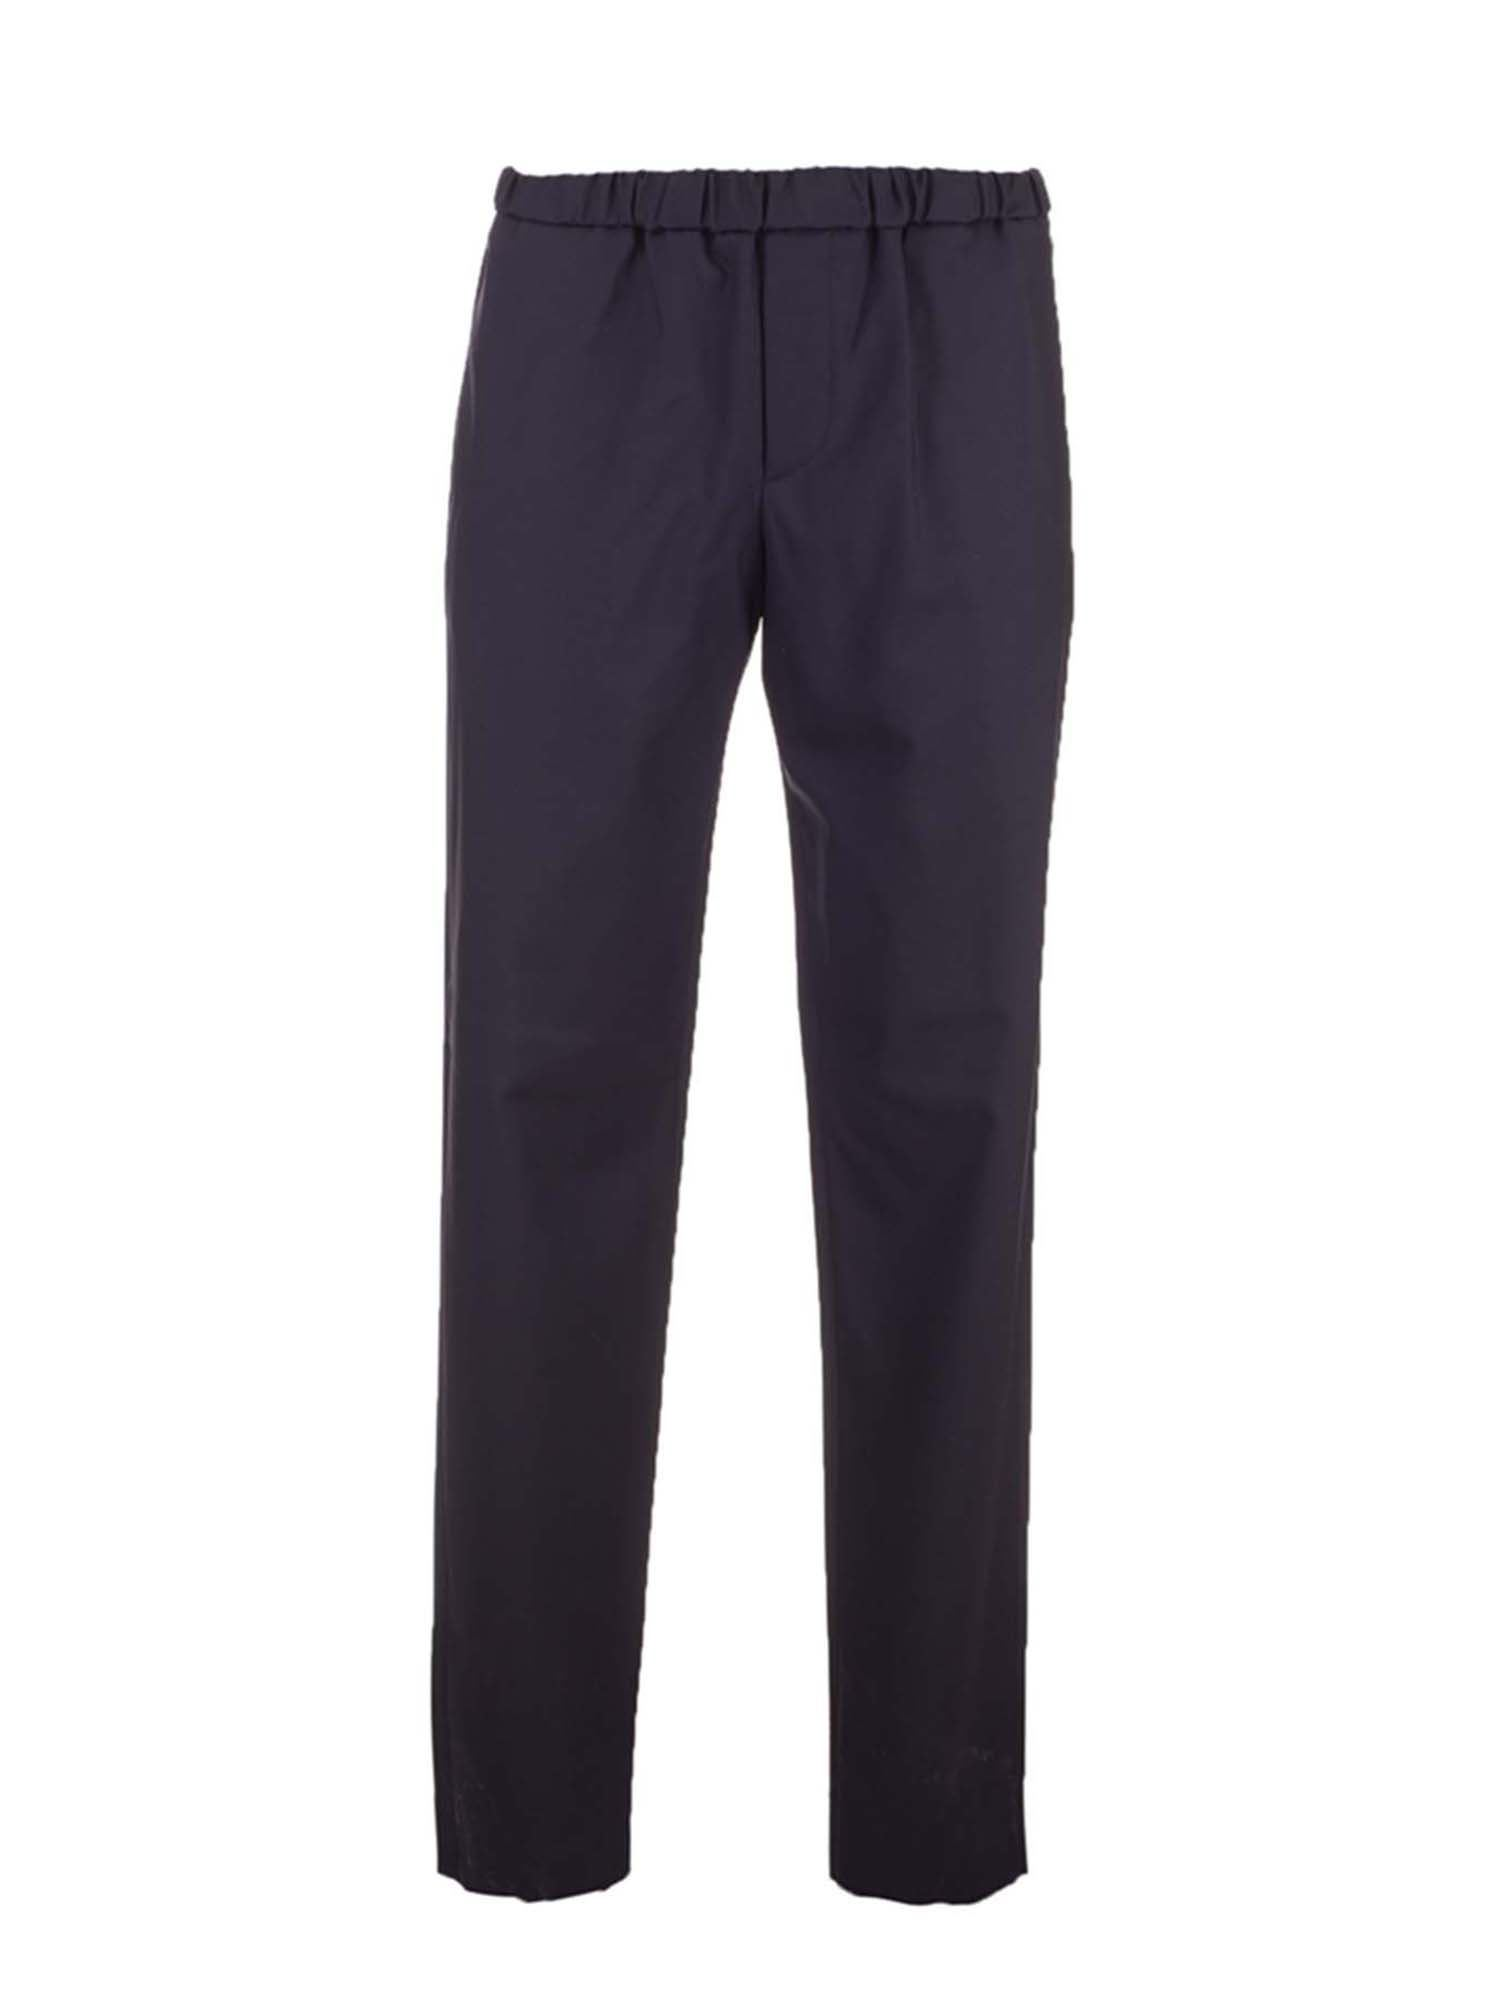 Loro Piana LEISURE FLAT TROUSERS IN NAVY BLUE